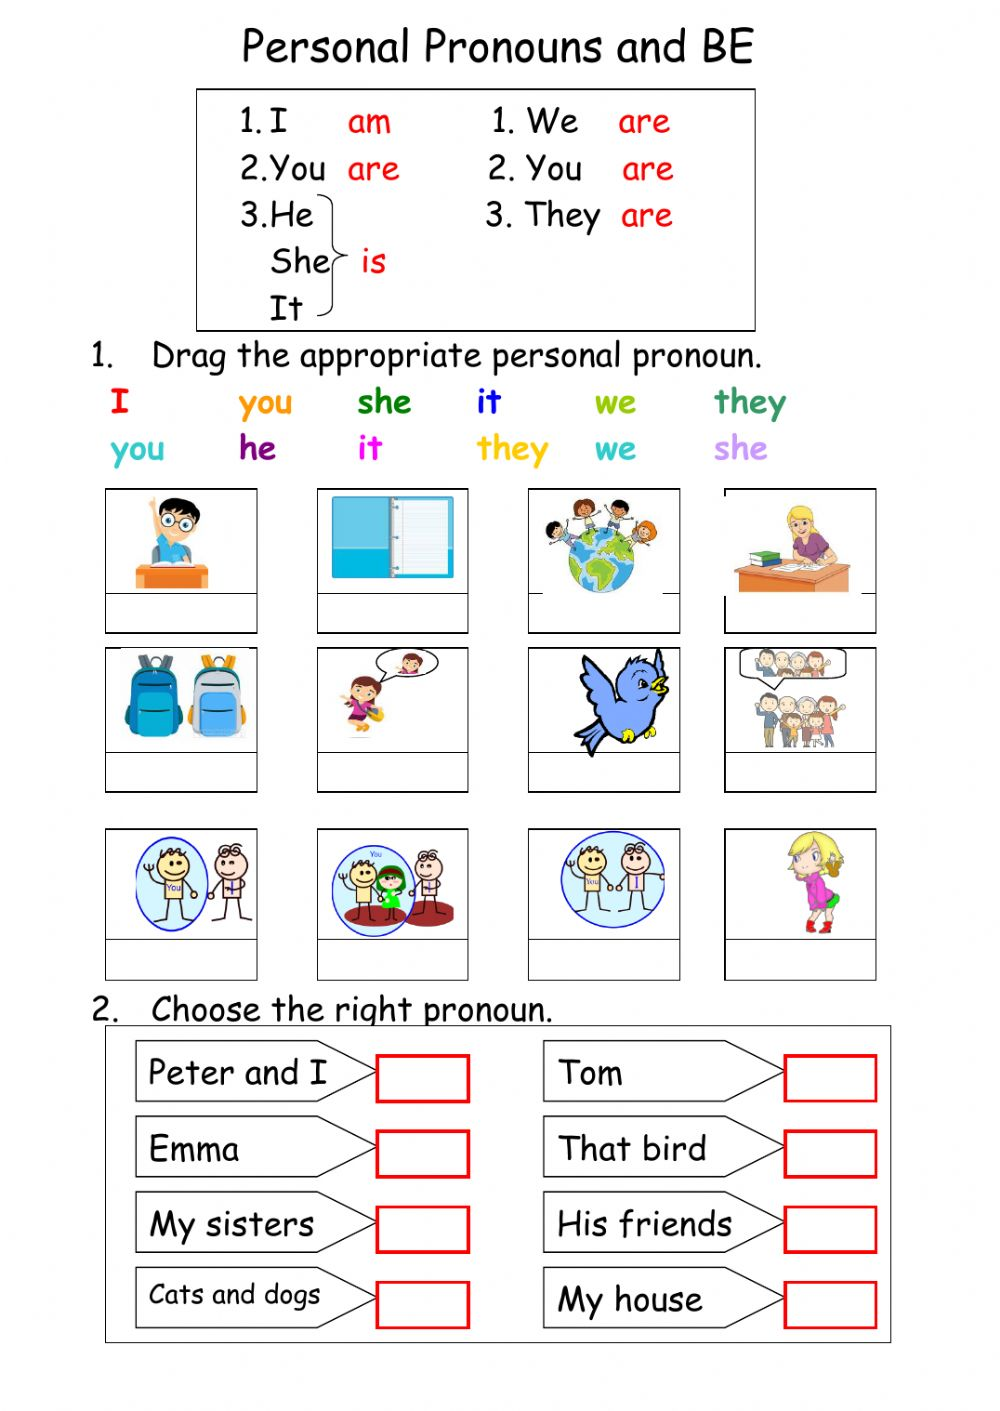 Personal Pronouns And Be Worksheet Can you disobey (he, him)? personal pronouns and be worksheet